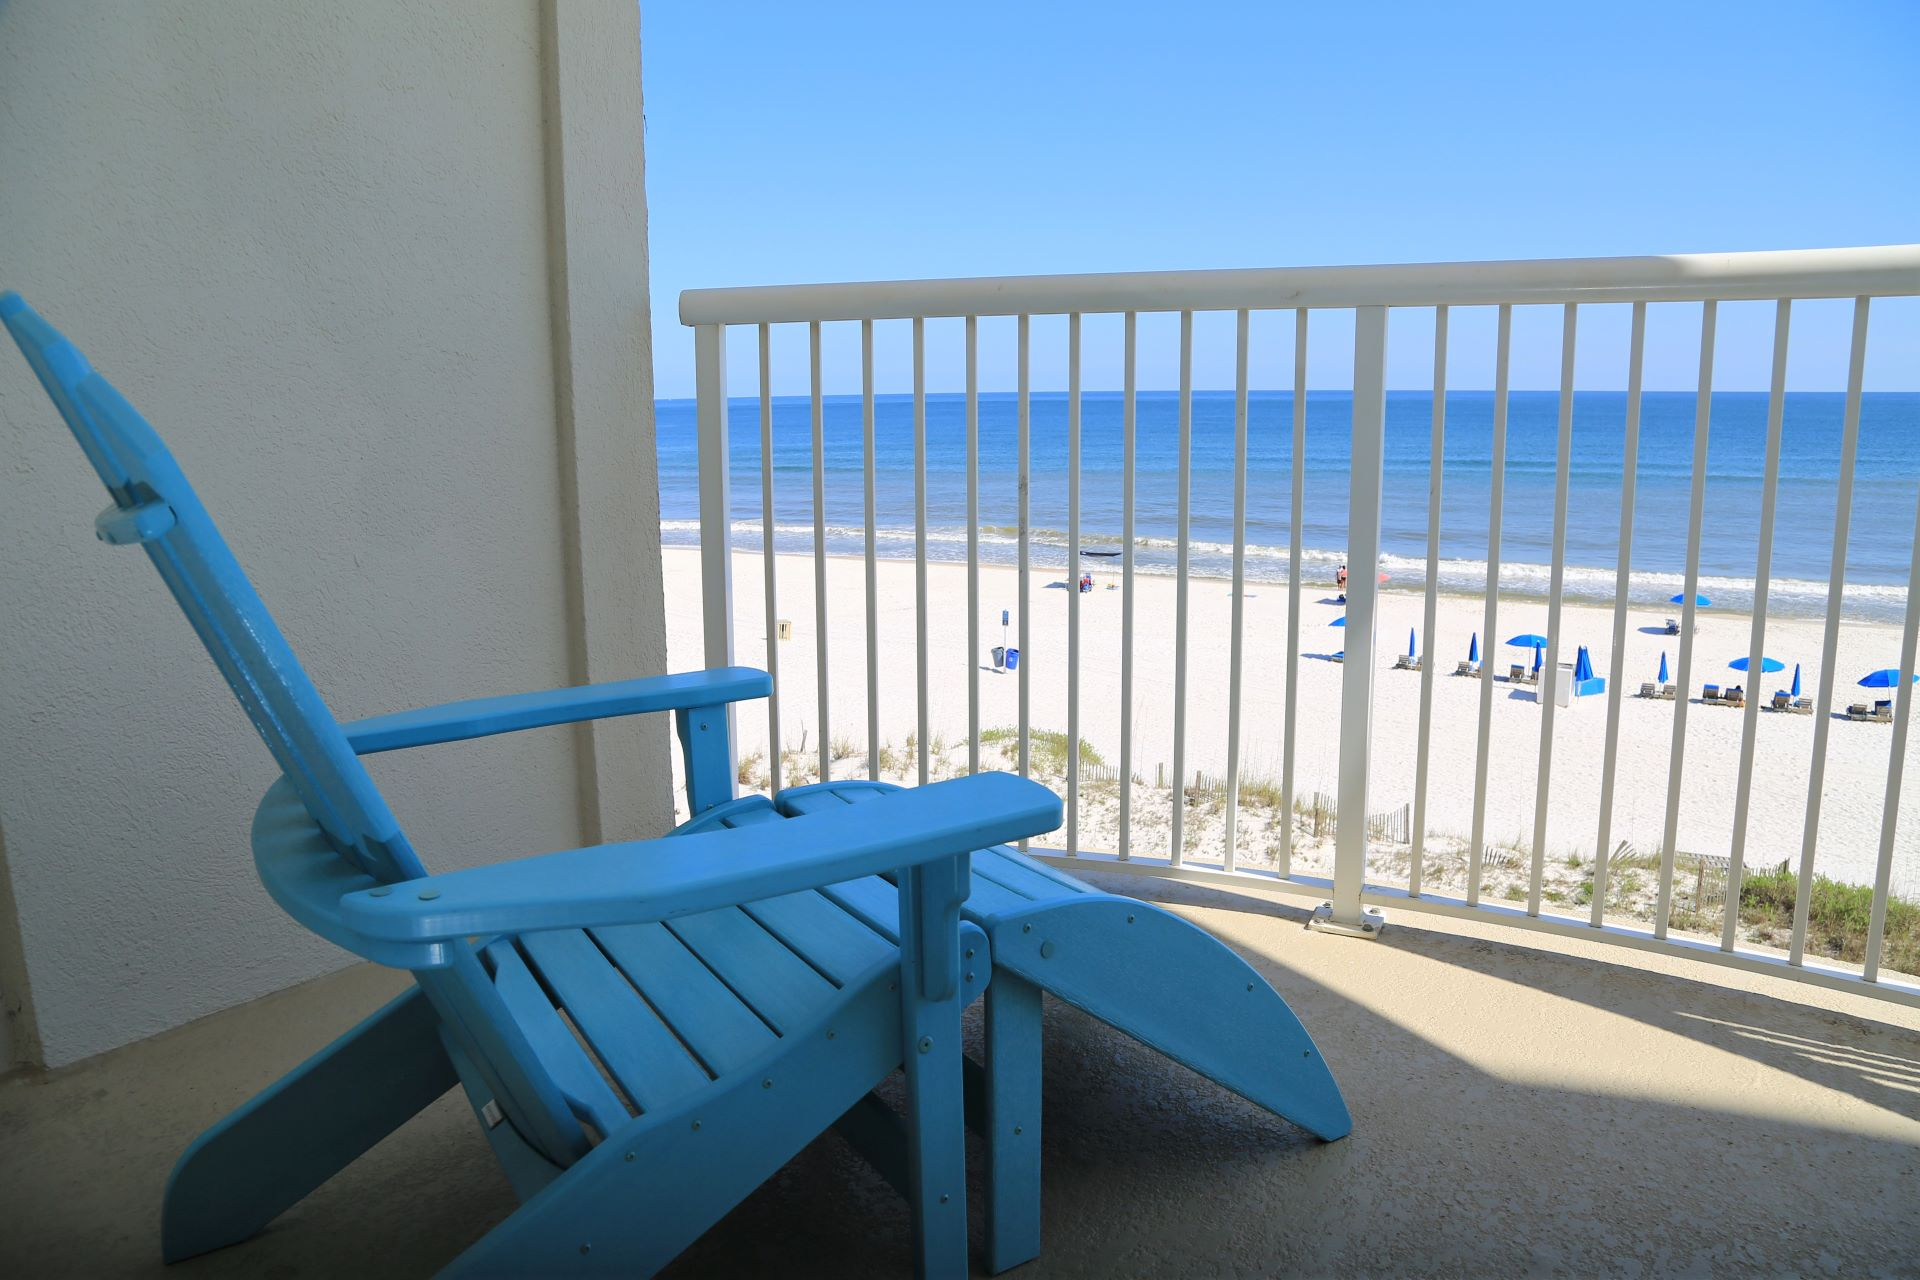 Lounge in the gulf breeze with a good book.